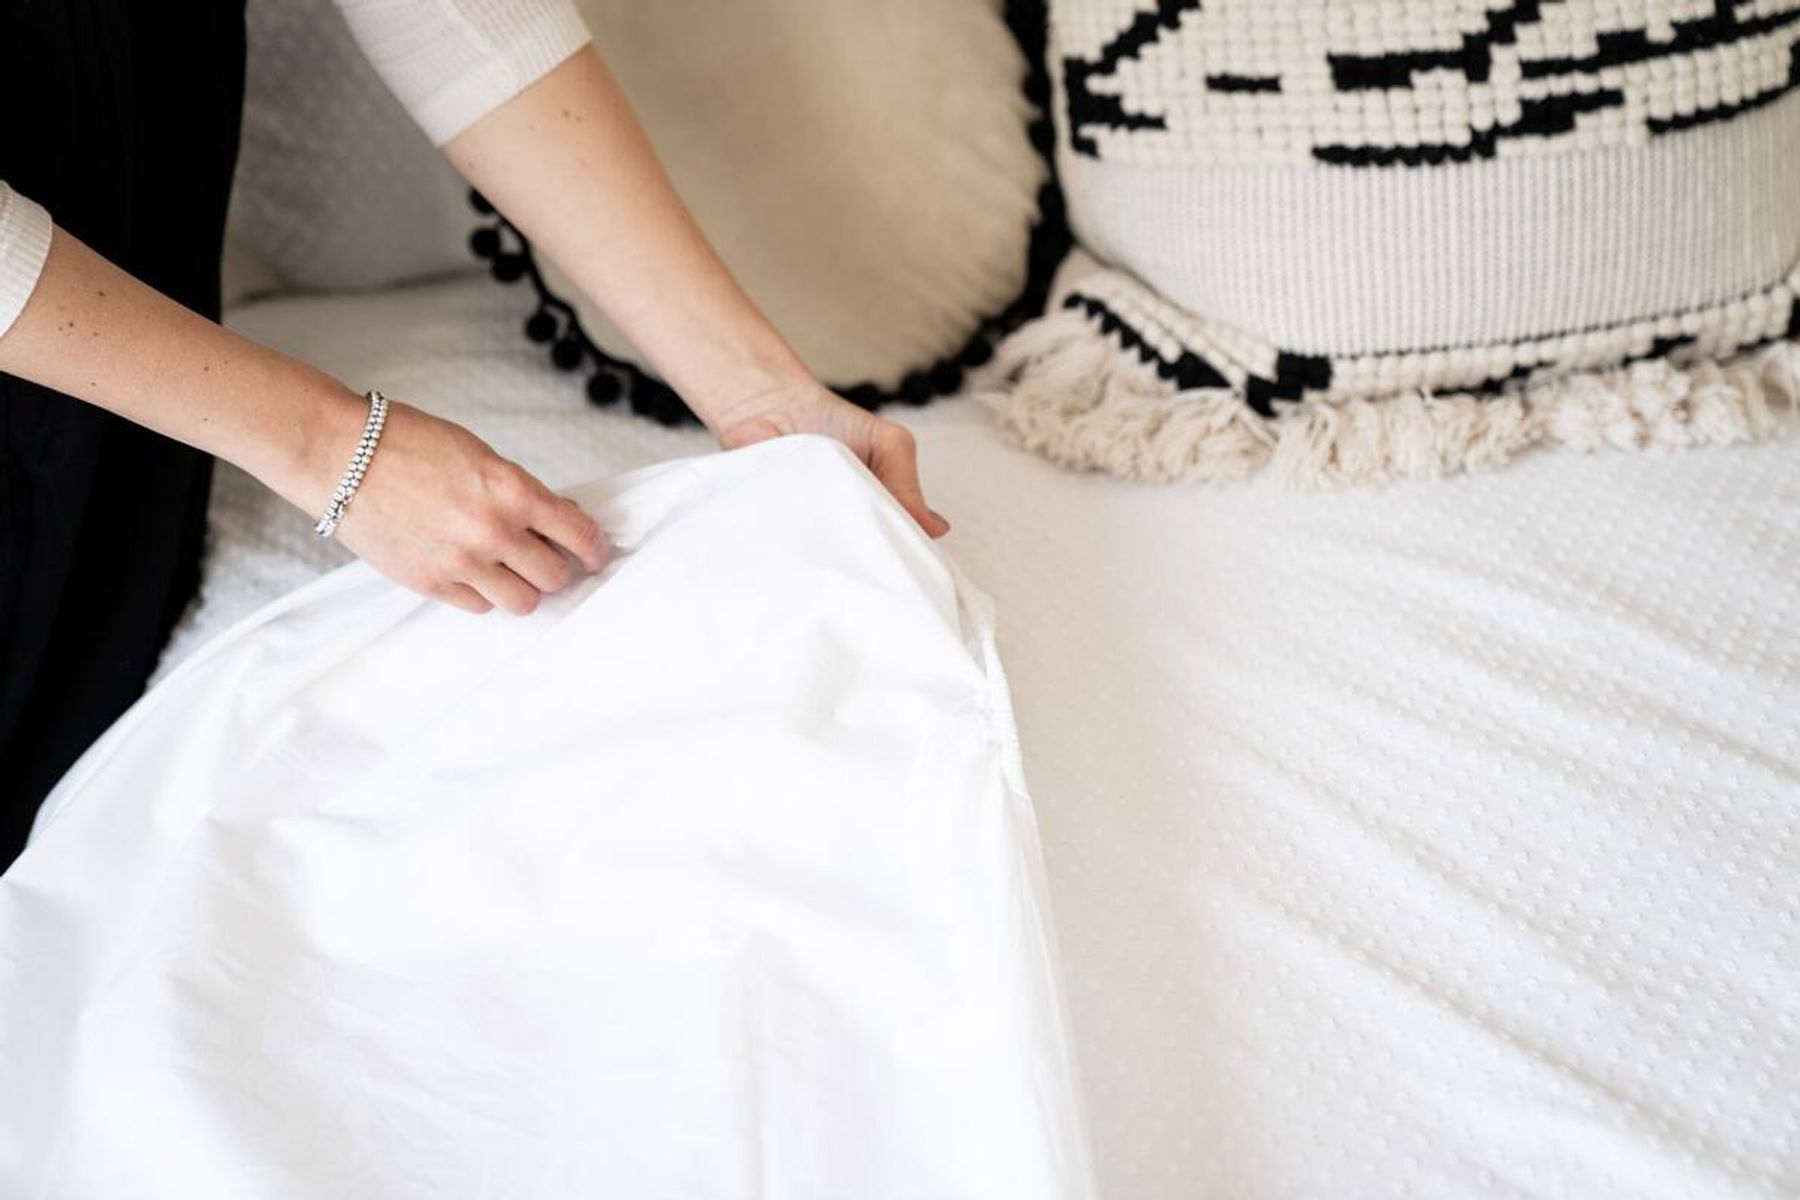 A fitted sheet being folded vertically